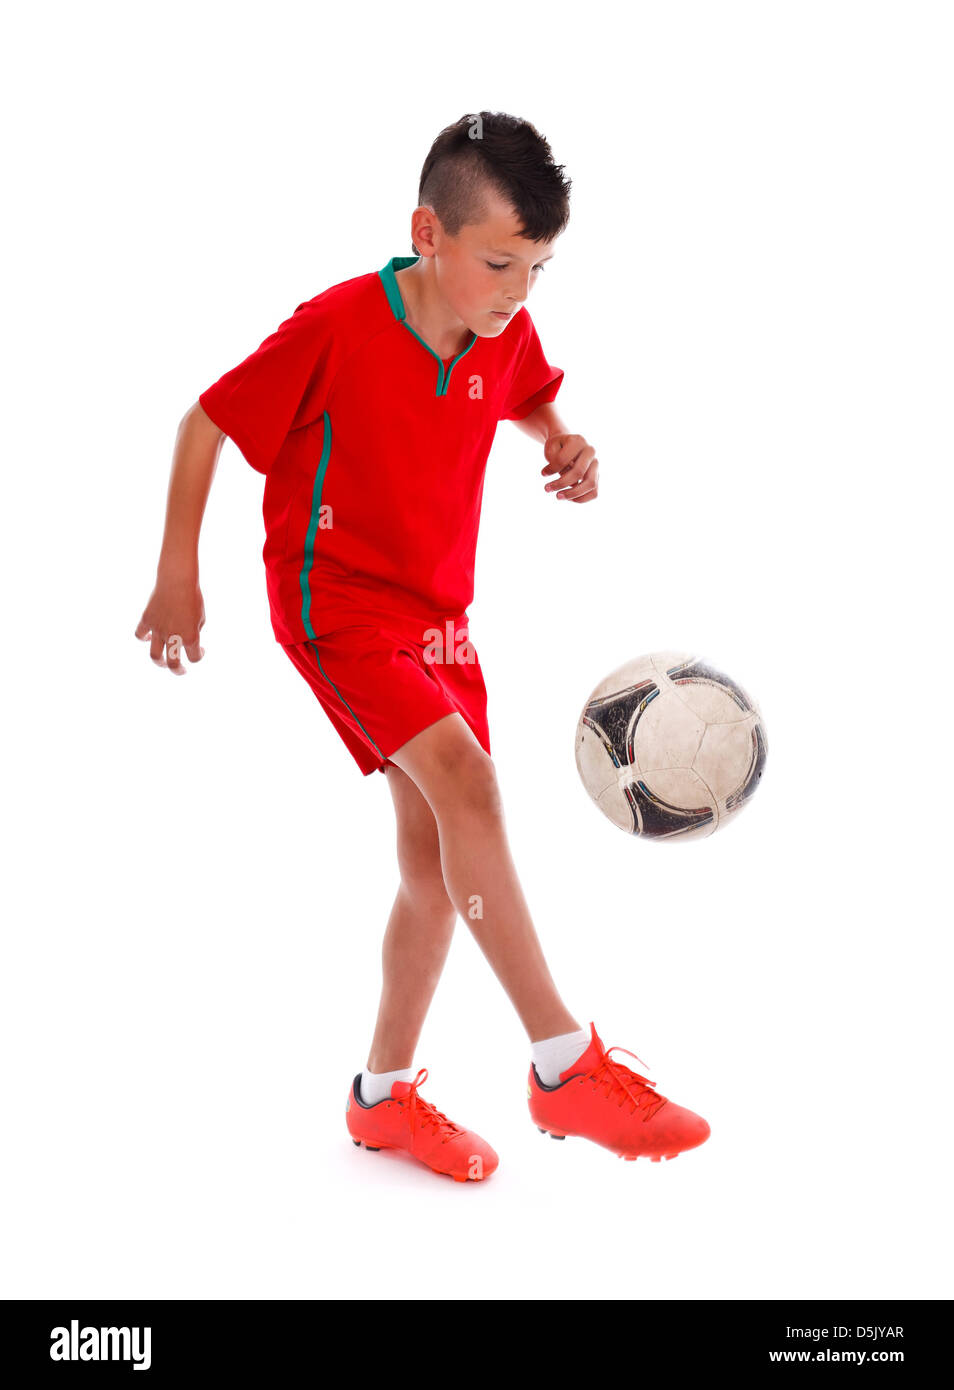 Young boy making soccer moves over white background - Stock Image